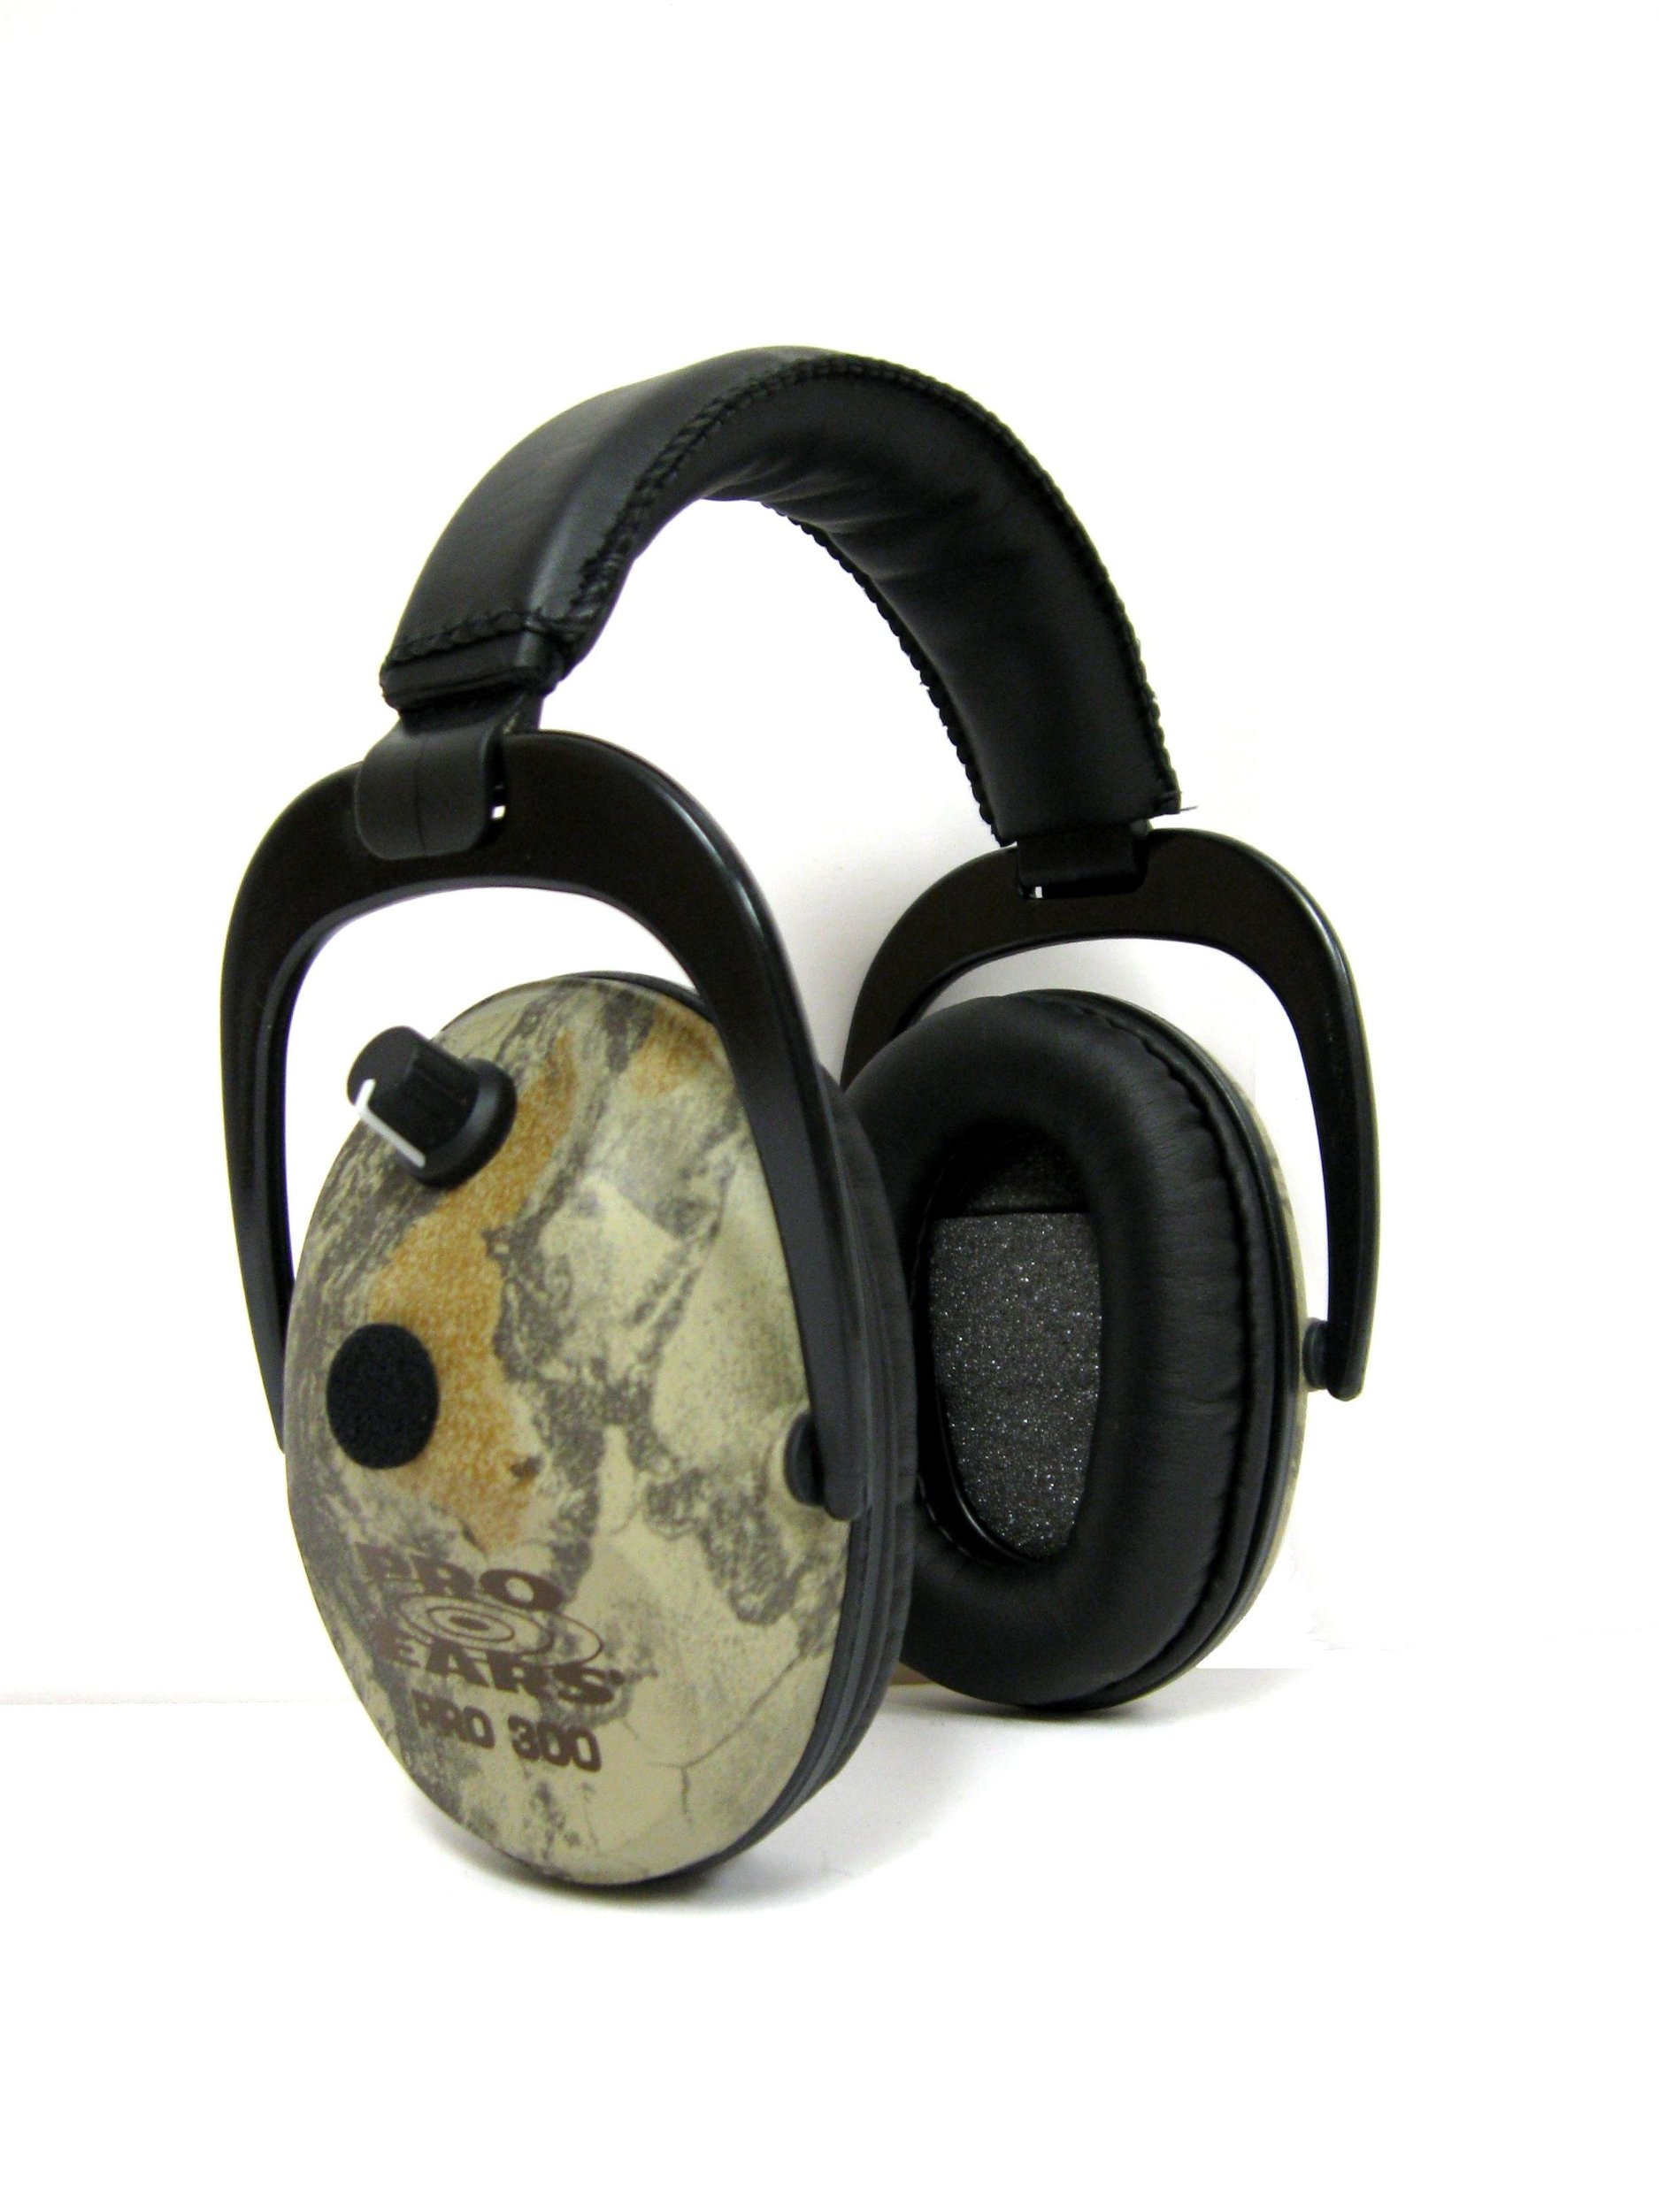 Pro Ears - Pro 300 - Electronic Hearing Protection and Amplification - NRR 26 - Ear  Muffs by Pro Ears (Image #1)